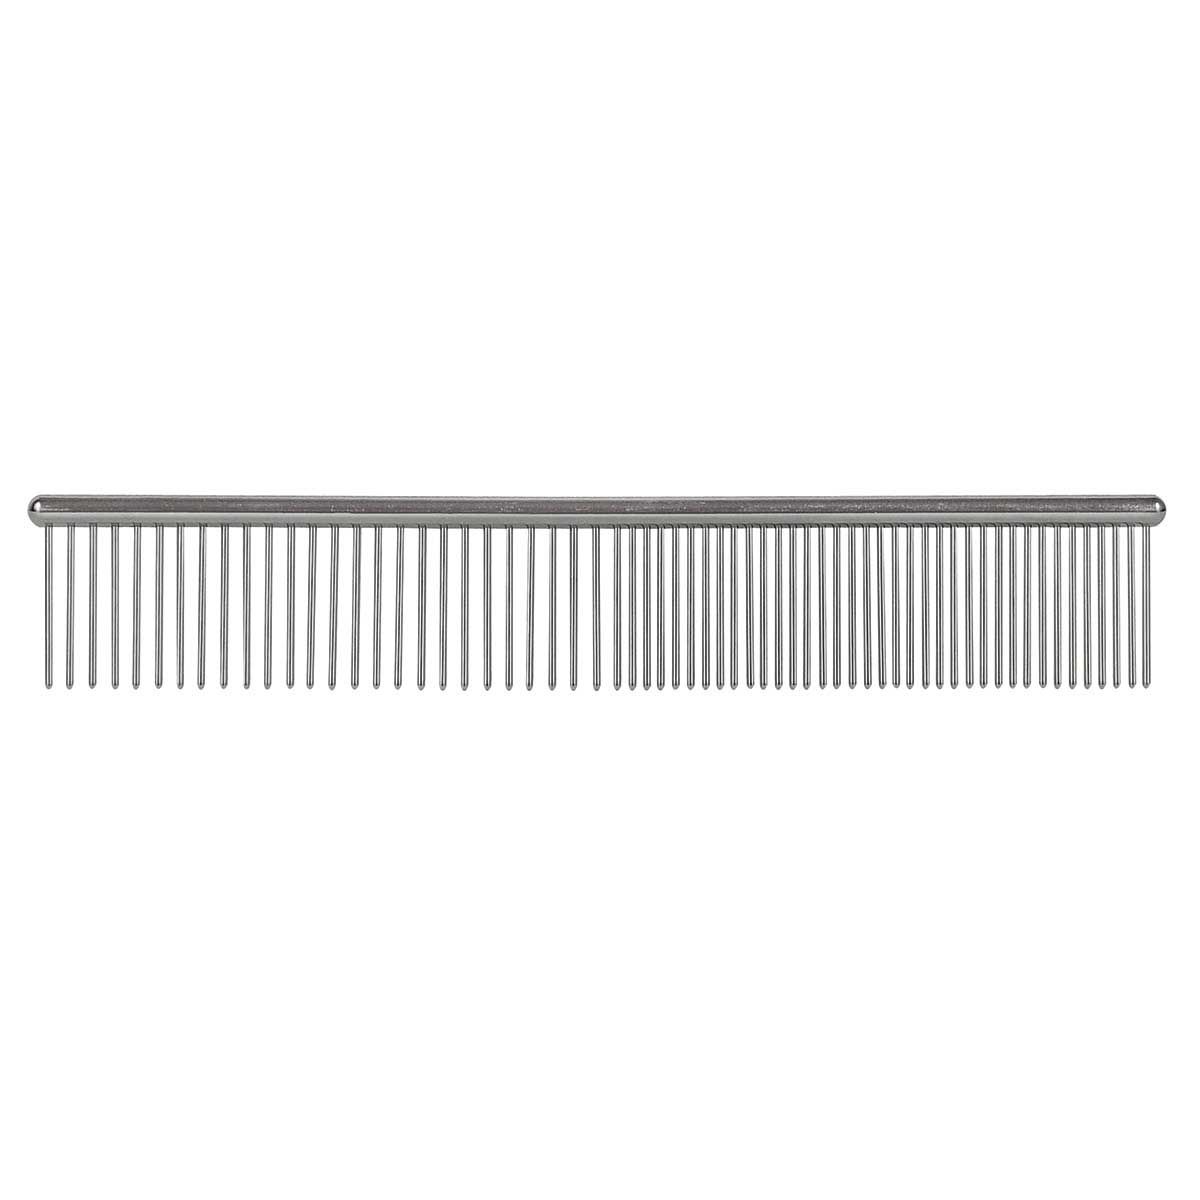 Paw Brothers 7.5 inch Ultra Steel Comb for Medium and Coarse Hair